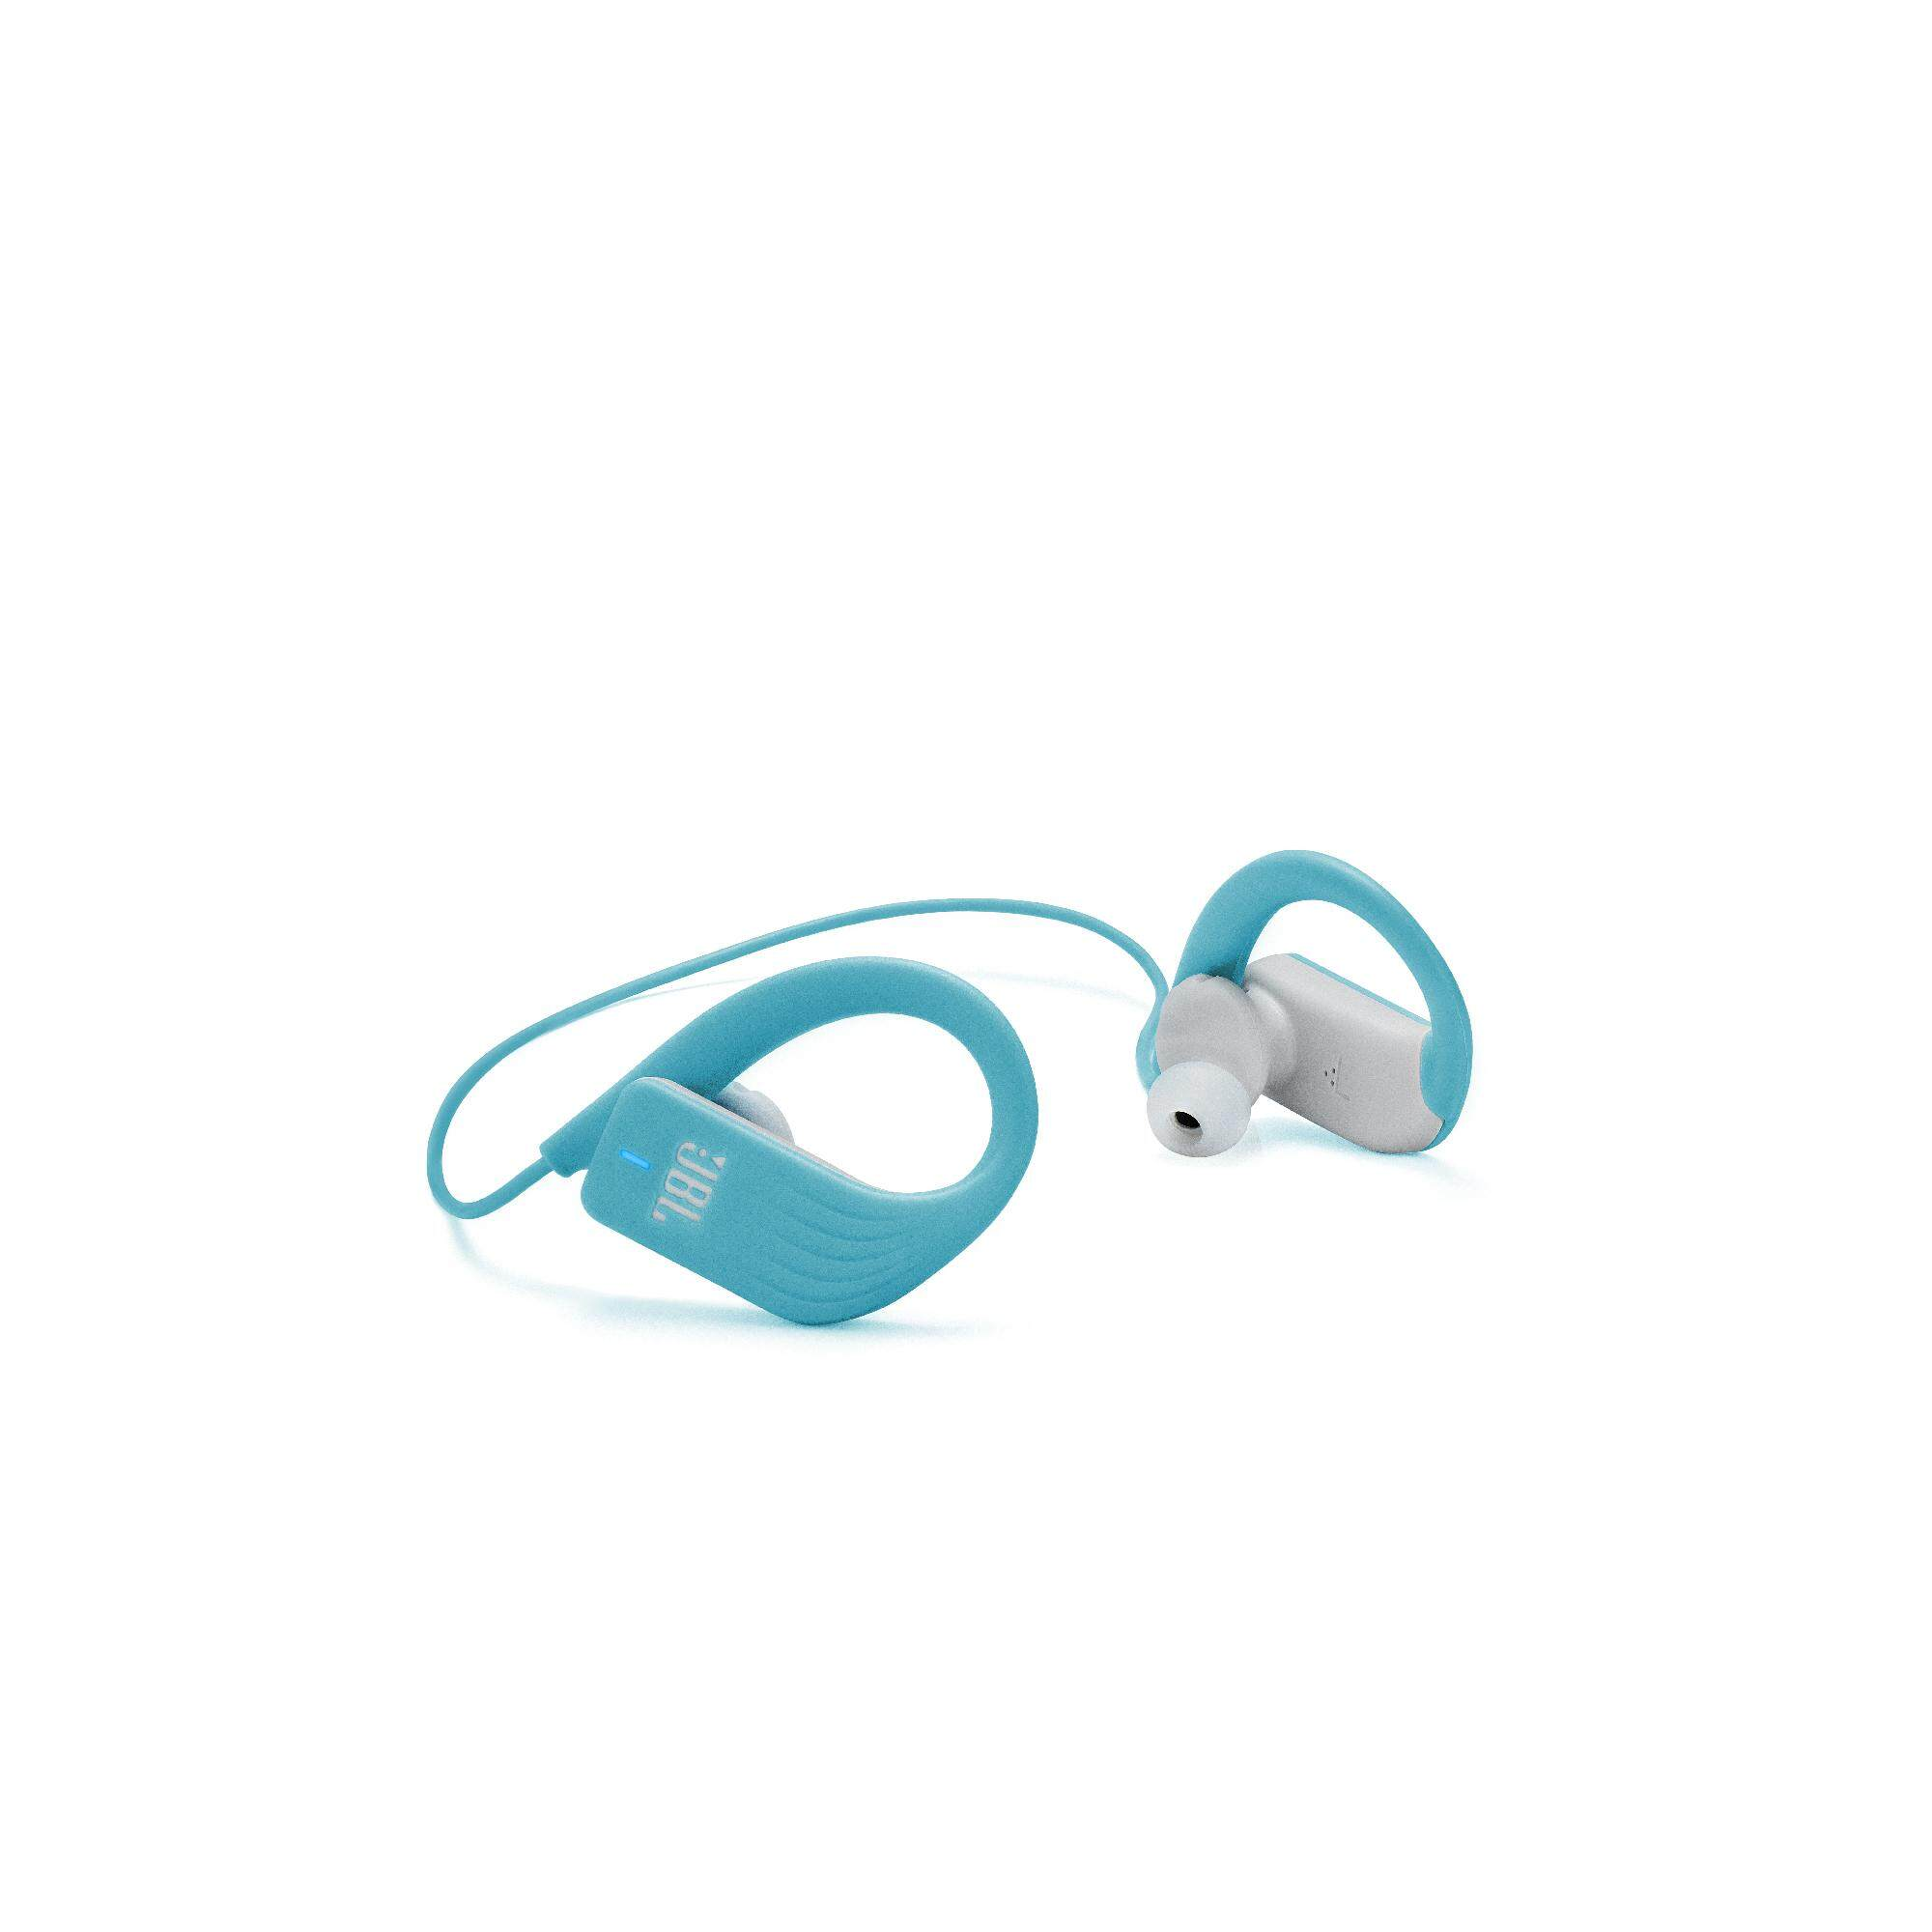 Jbl Products For The Best Price In Malaysia Headset Wireless Stereo S990 New Design Endurance Sprint Waterproof Ear Sport Headphones